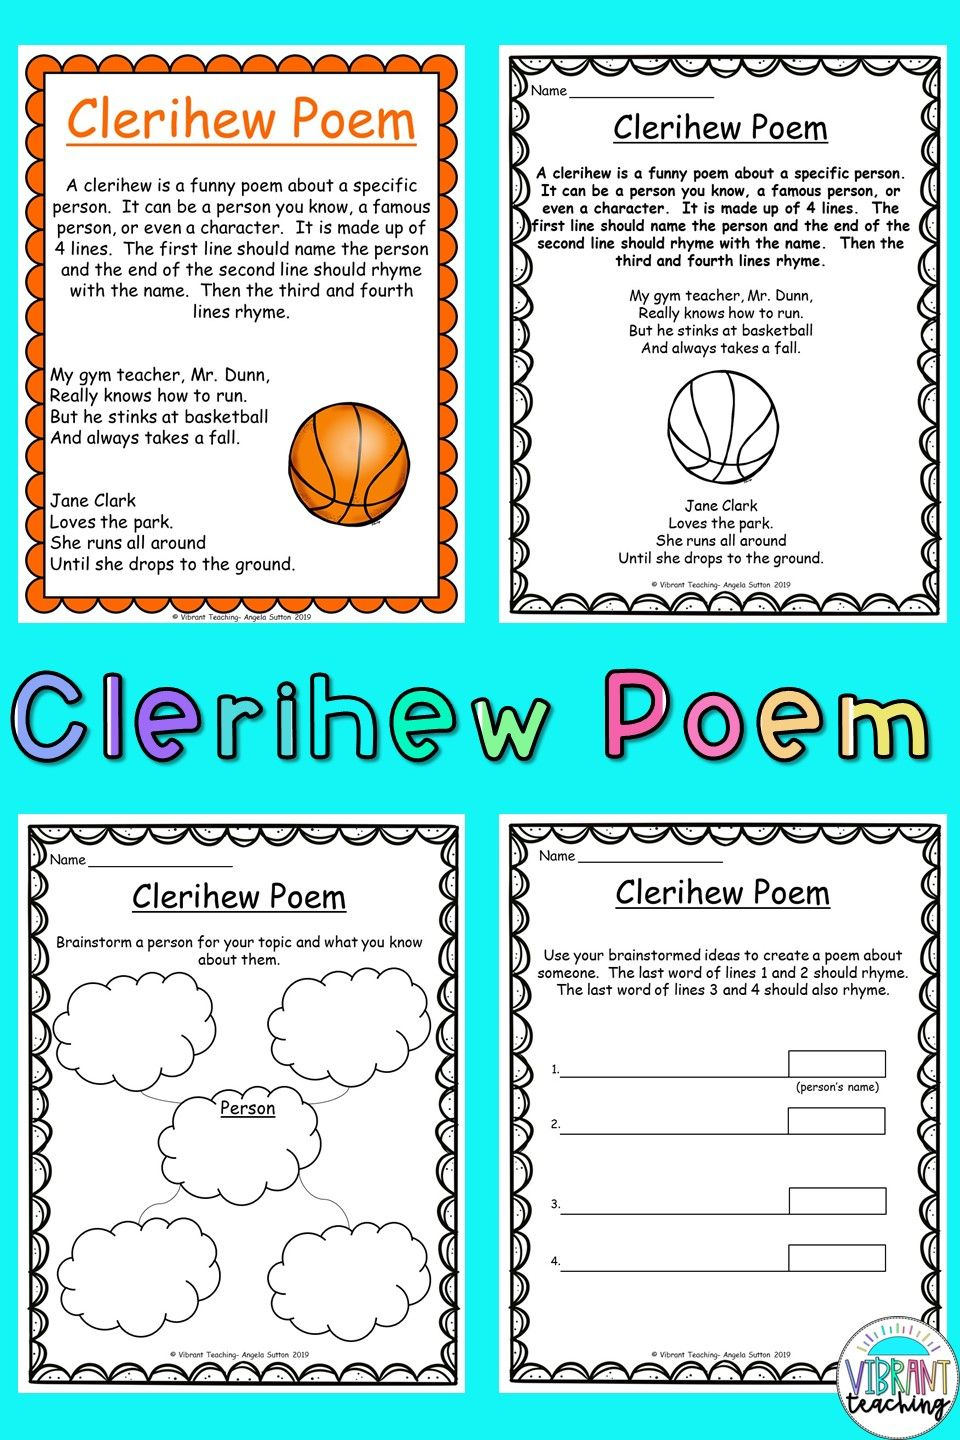 Clerihew Poem For Kids In 2020 Poetry For Kids Poem Activities Poetry Books For Kids